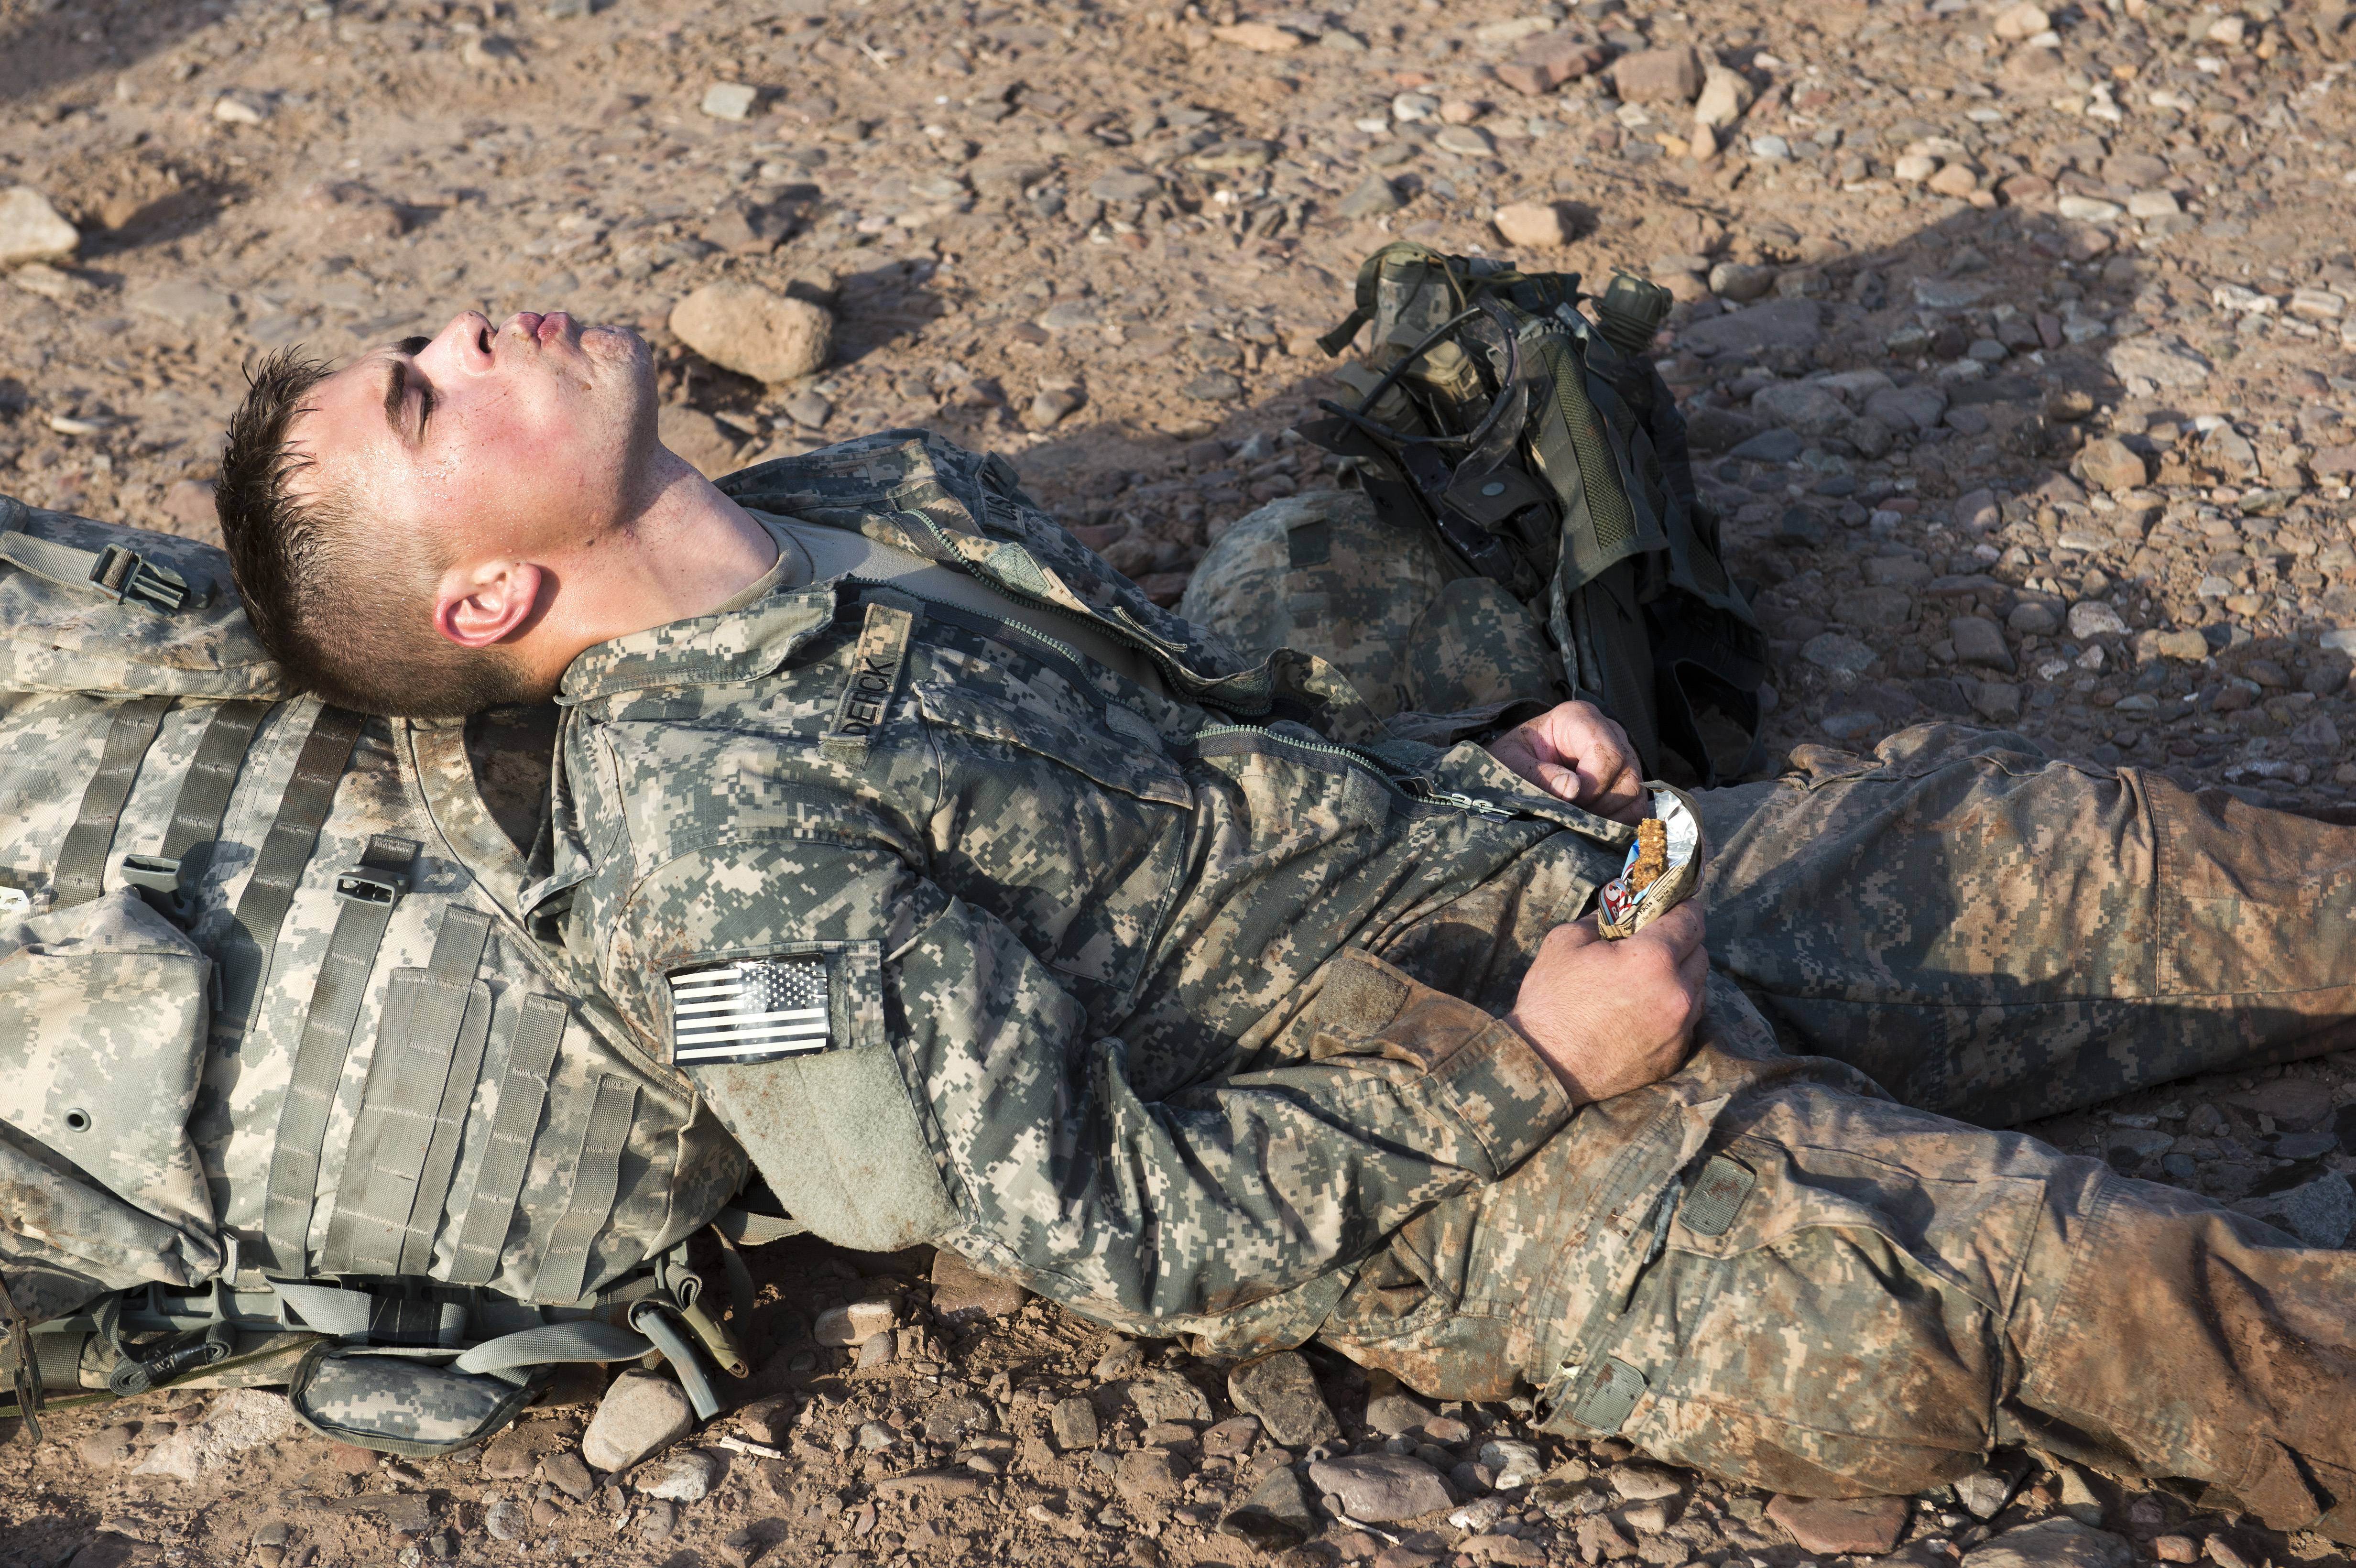 A soldier from the 1st Battalion, 77th Armor Regiment, rests after completing a 12-mile ruck march in Arta, Djibouti, April 24, 2015. The march was the final task for Expert Infantry Badge candidates to complete to earn the honor, which is one of the most important achievements a U.S. Army infantryman can earn. (U.S. Air Force photo by Staff Sgt. Nathan Maysonet)